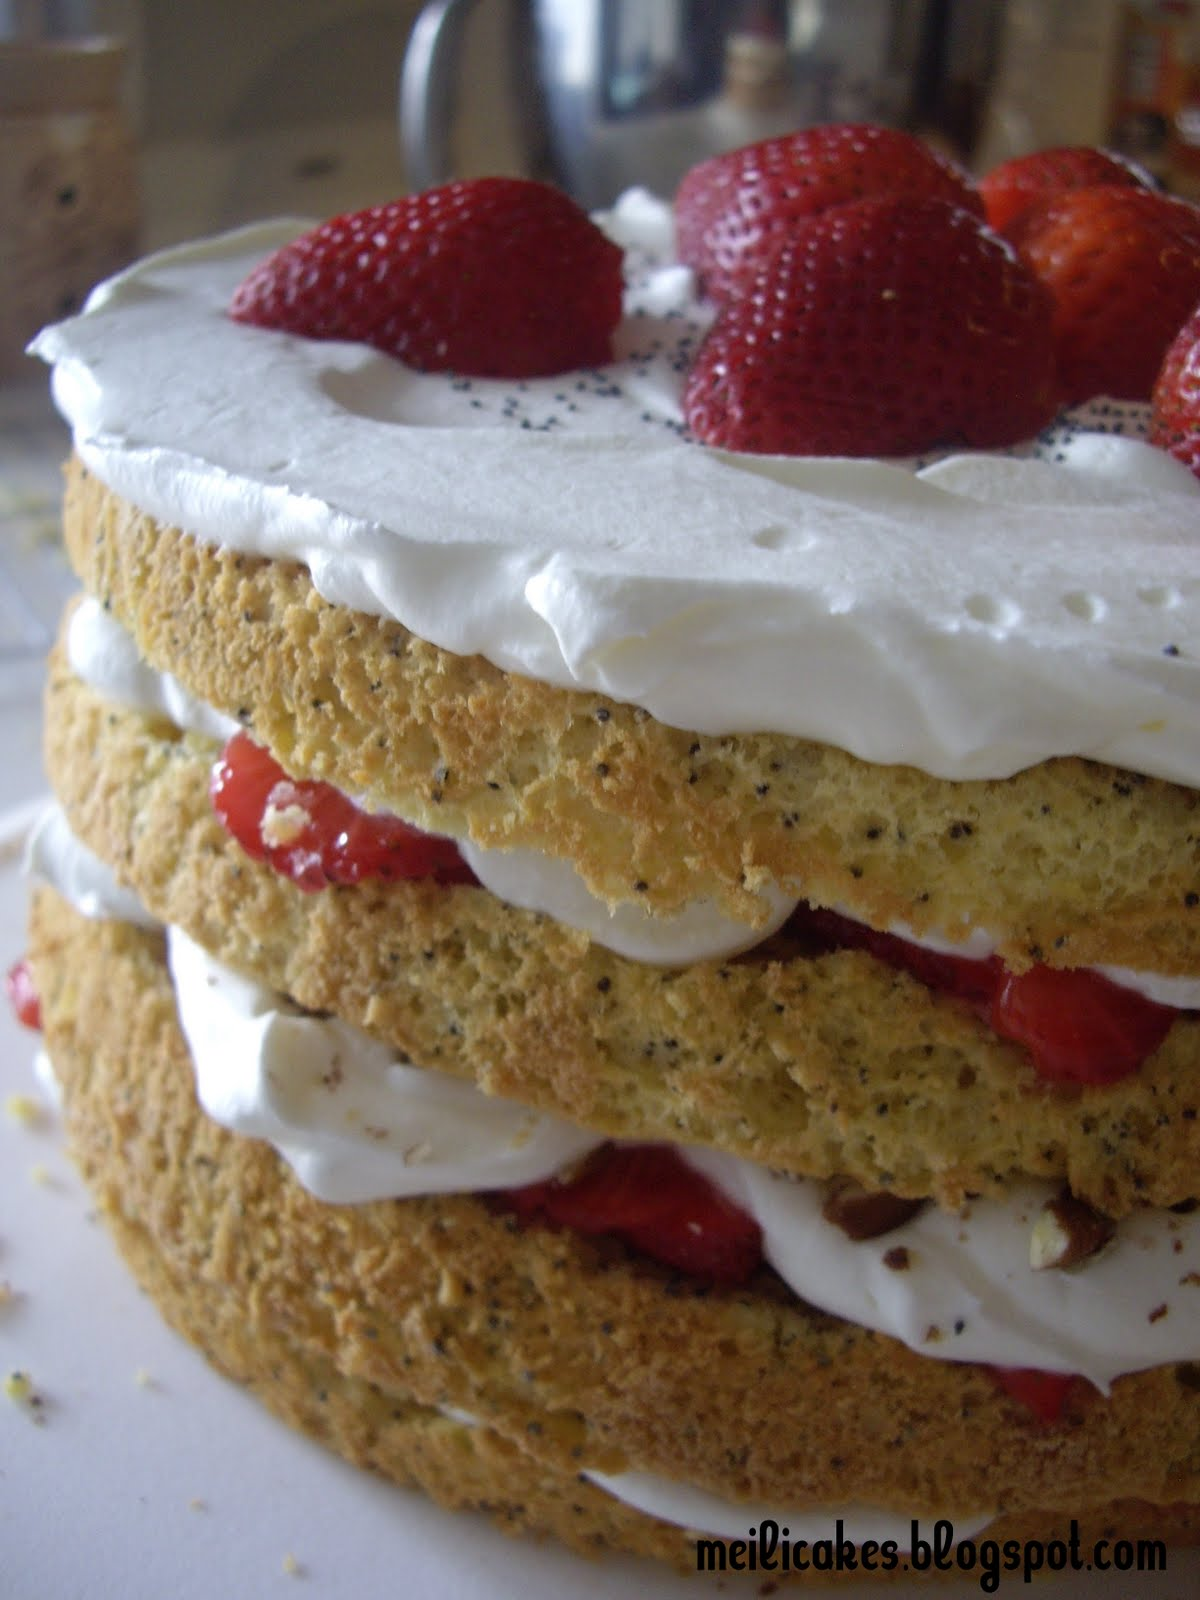 Meili's: Lemon Poppyseed Strawberry Shortcake